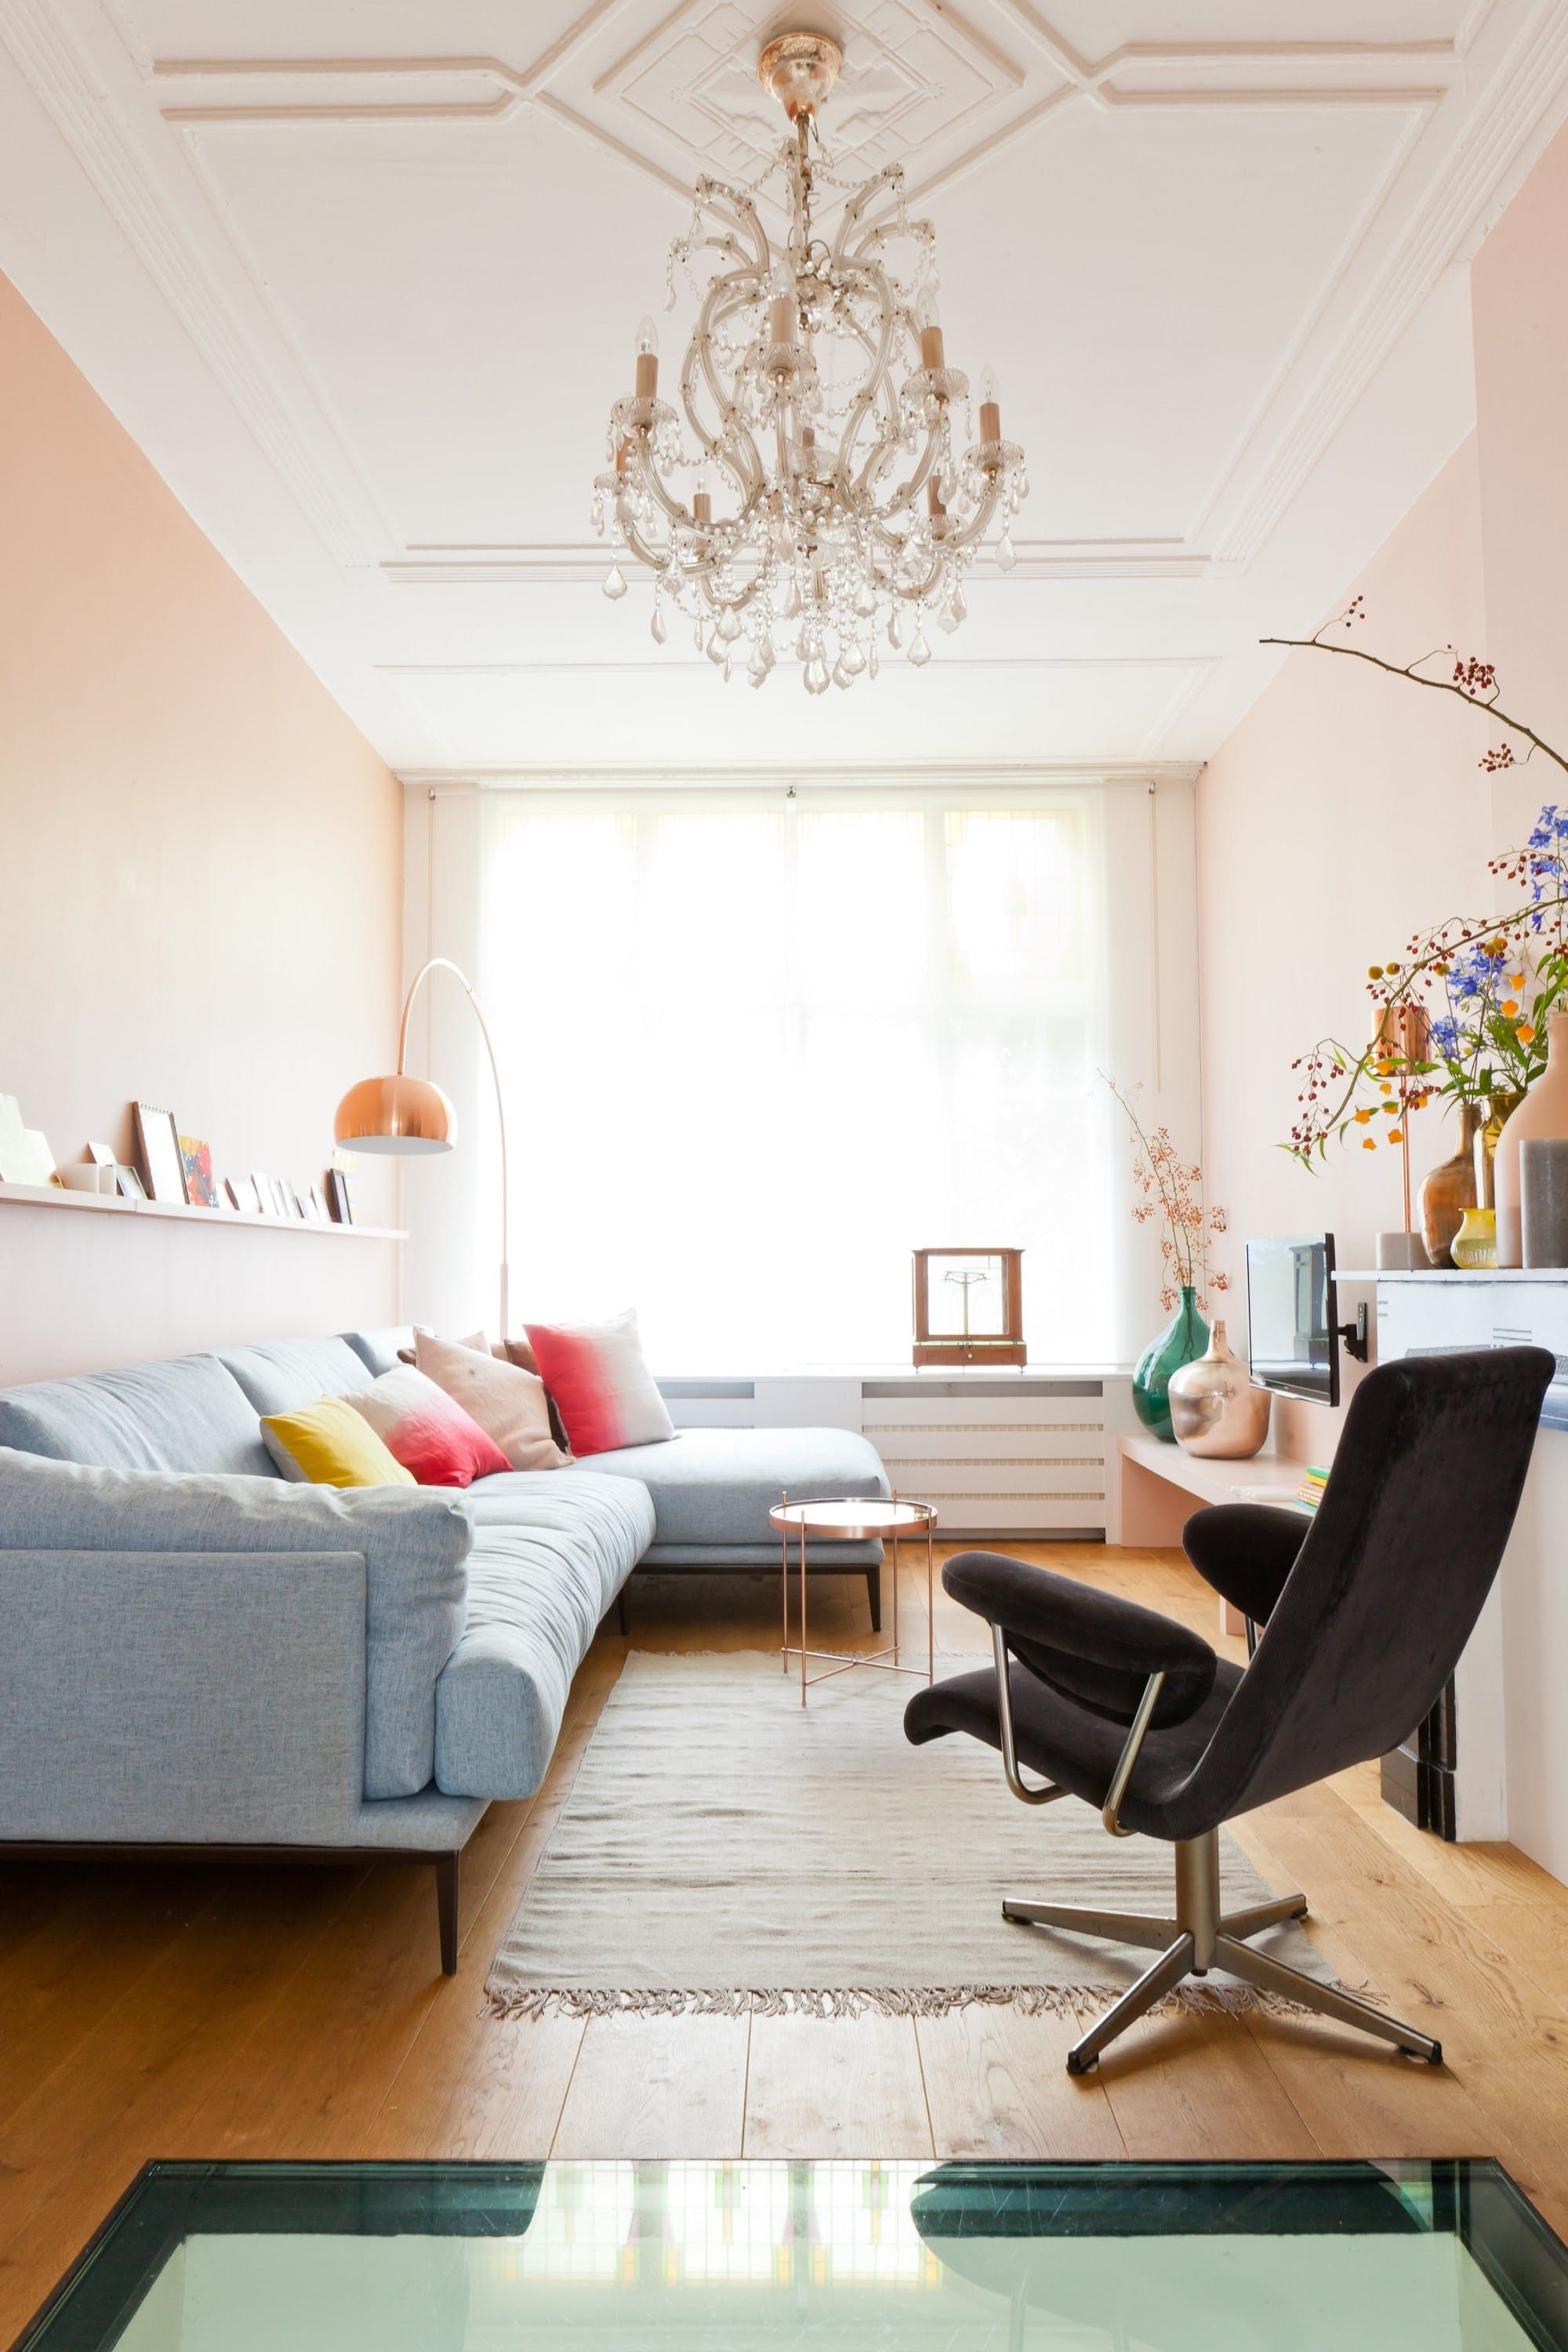 10 Stylish Color Schemes to Inspire Your New Space | Spaces, Living ...